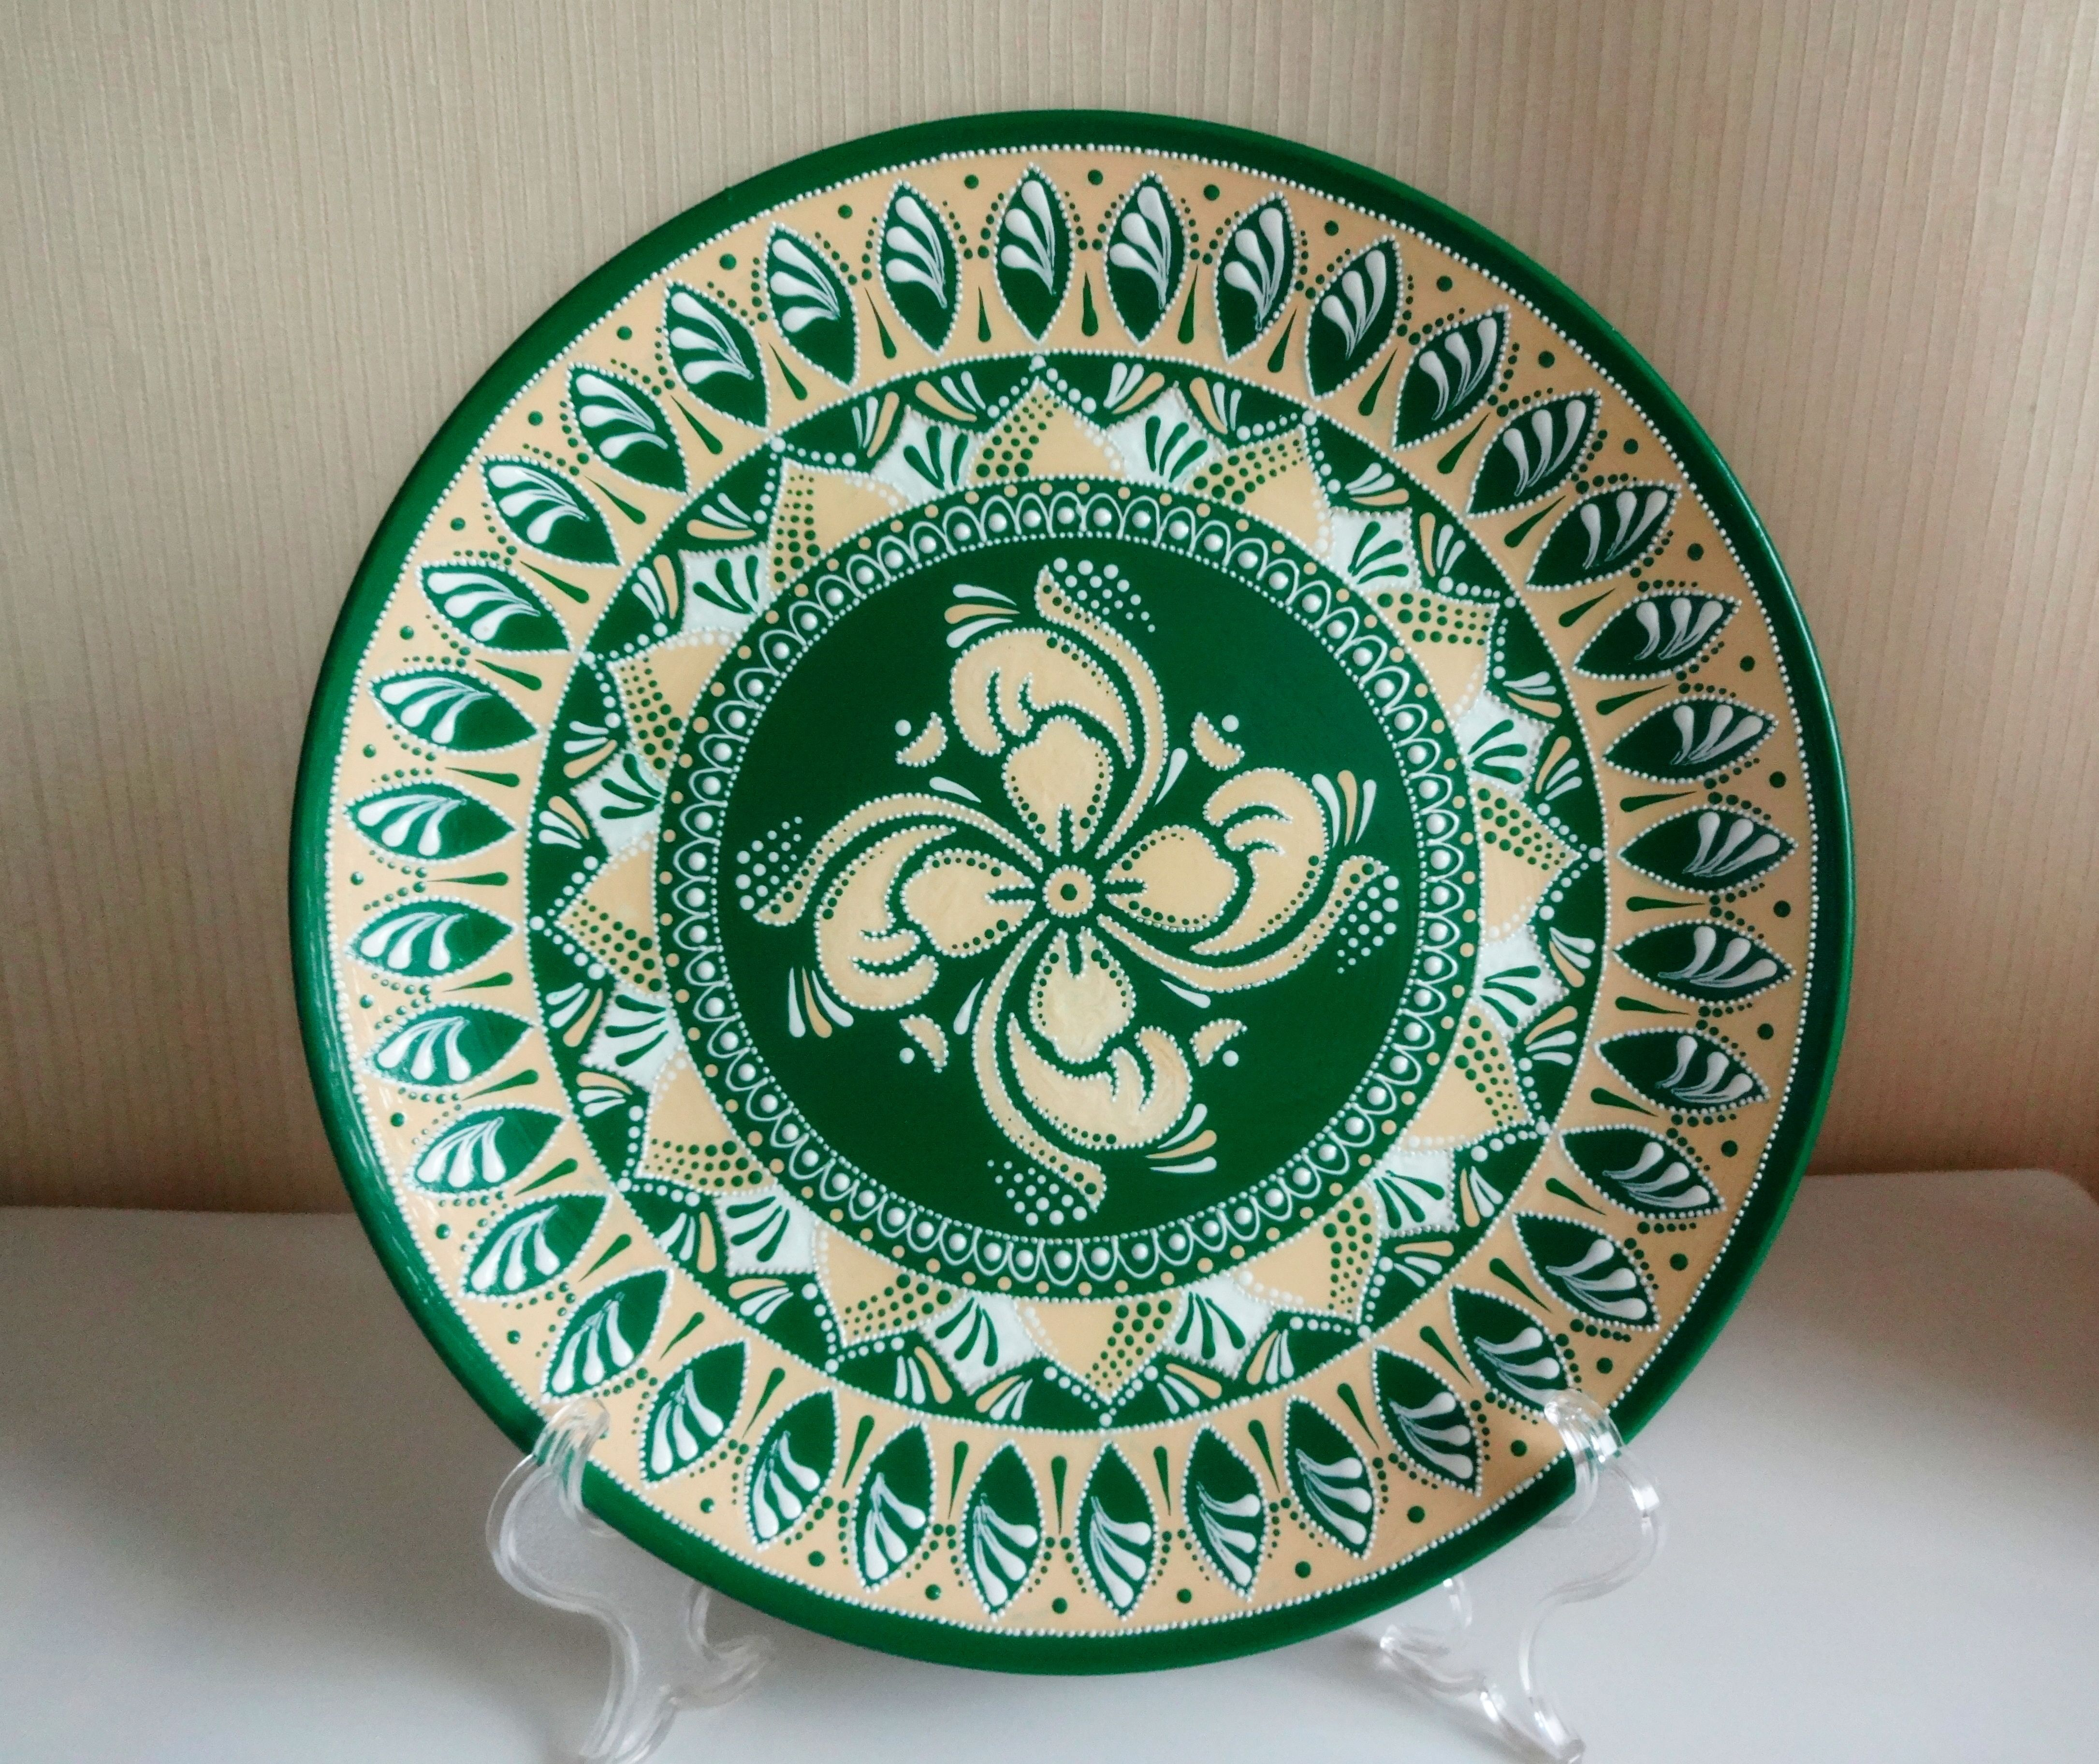 Decorative Plates For Hanging Large Decorative Plate Colorful Plates Ceramic Plates Paint Hand Painted Plates Mandala Plates Majolica Plates In 2021 Decorative Plates Hand Painted Plates Painted Plates